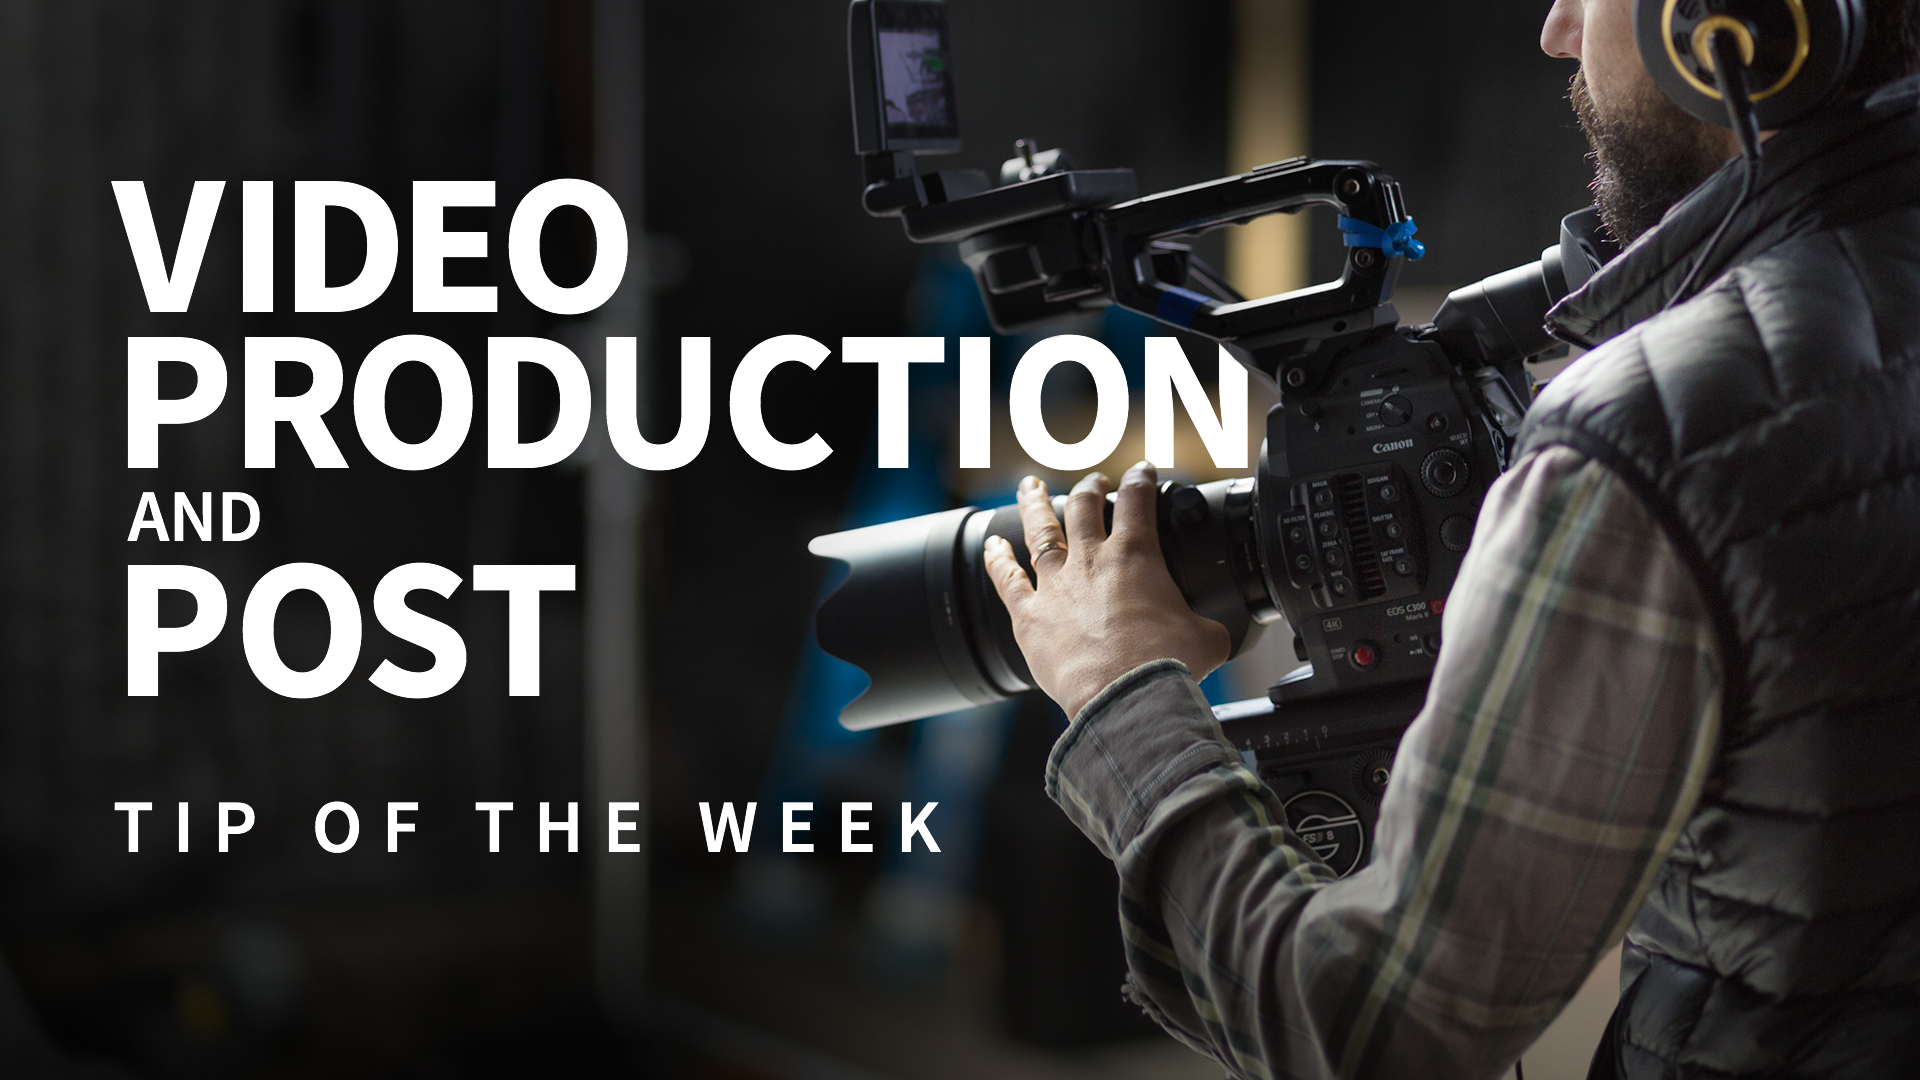 Using the ikan FLY-X3: Video Production and Post Tip of the Week